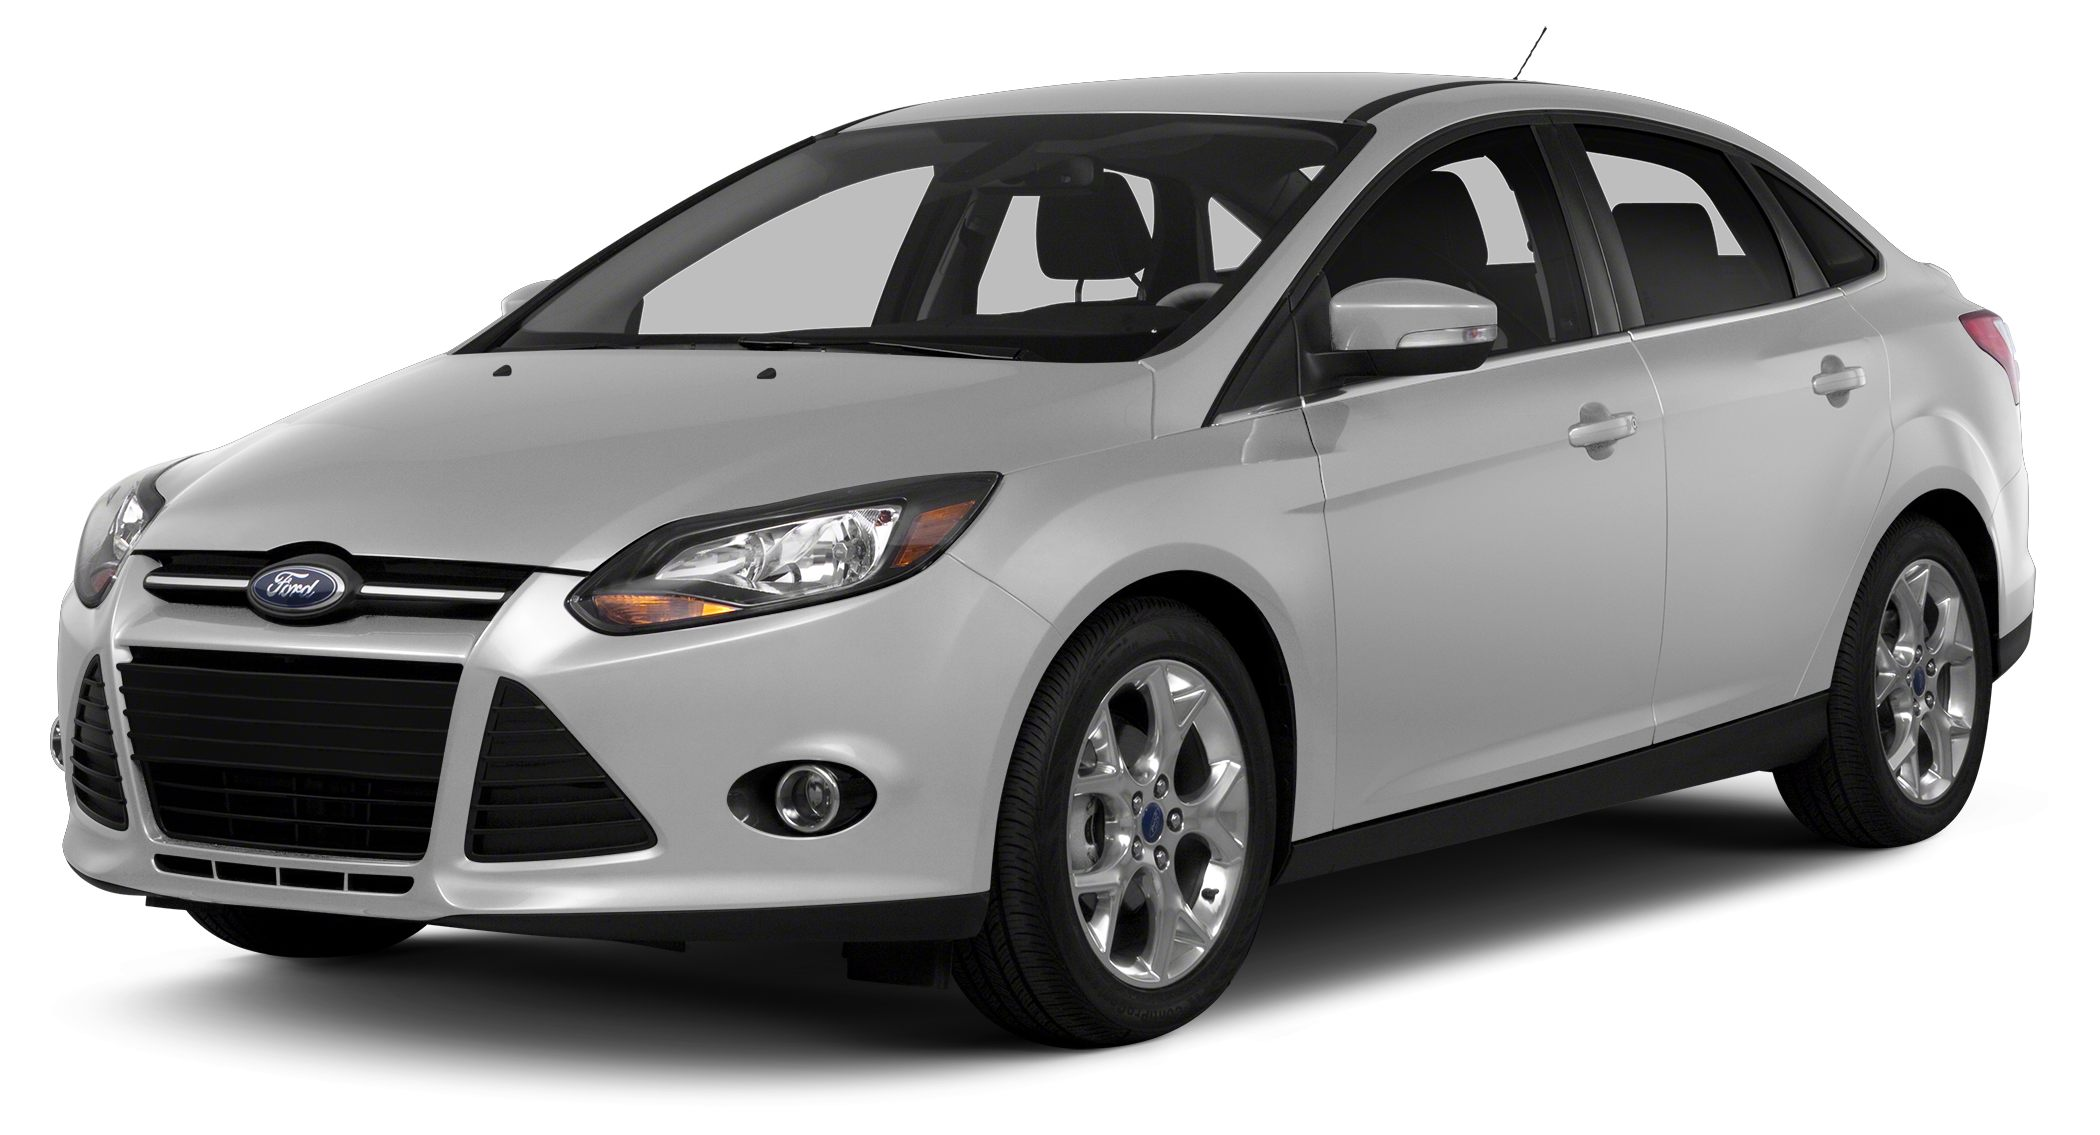 2014 Ford Focus SE Proudly serving manatee county for over 60 years offering Cars Trucks SUVs